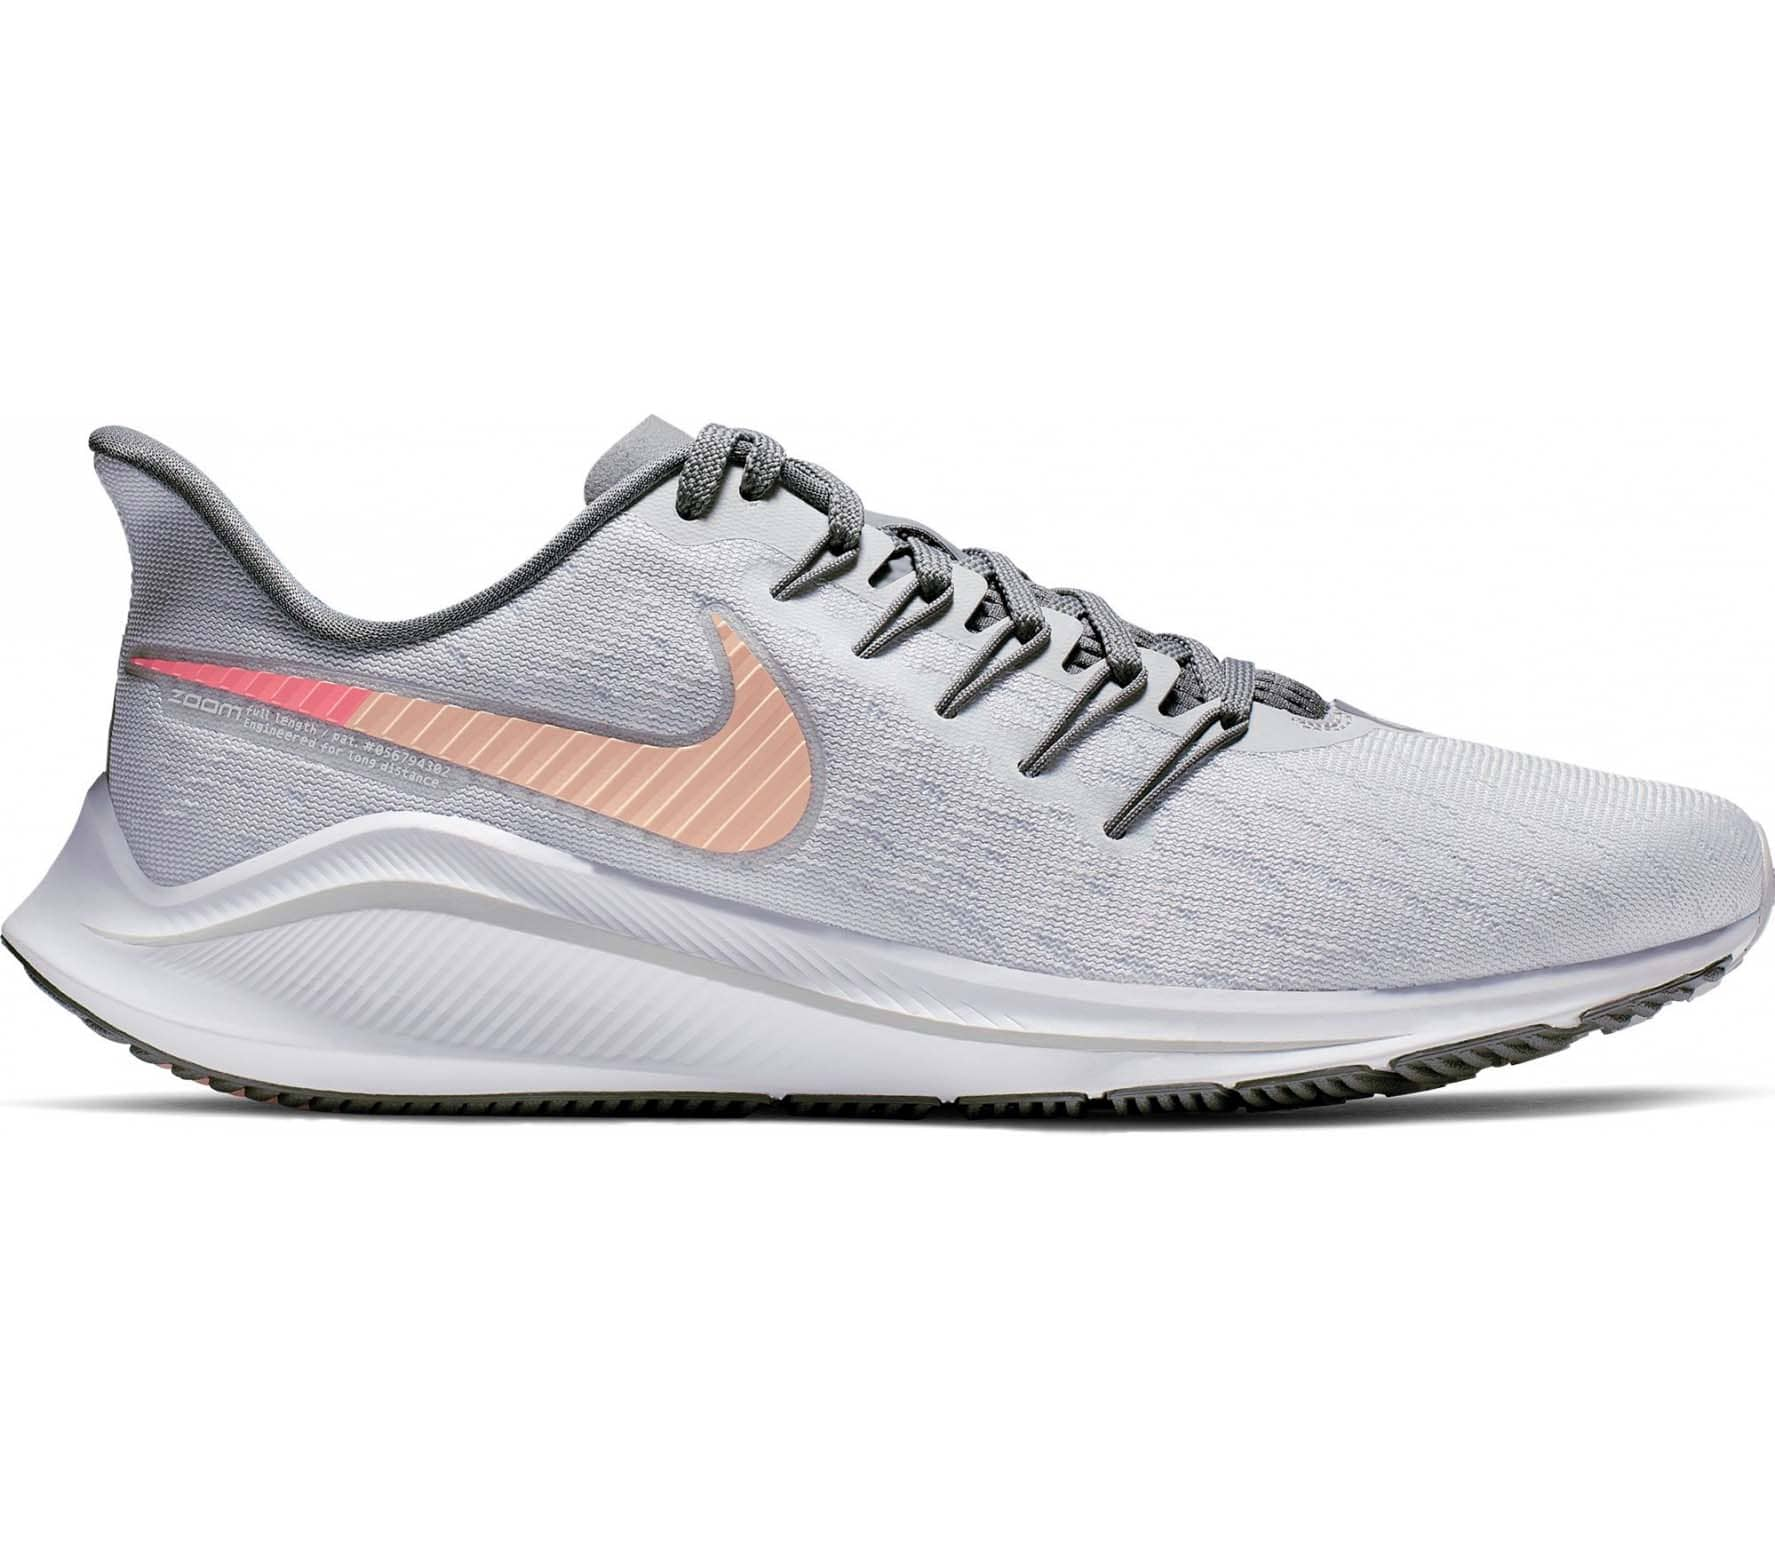 sports shoes 912c0 2d8bd Nike - Air Zoom Vomero 14 women s running shoes (grey)